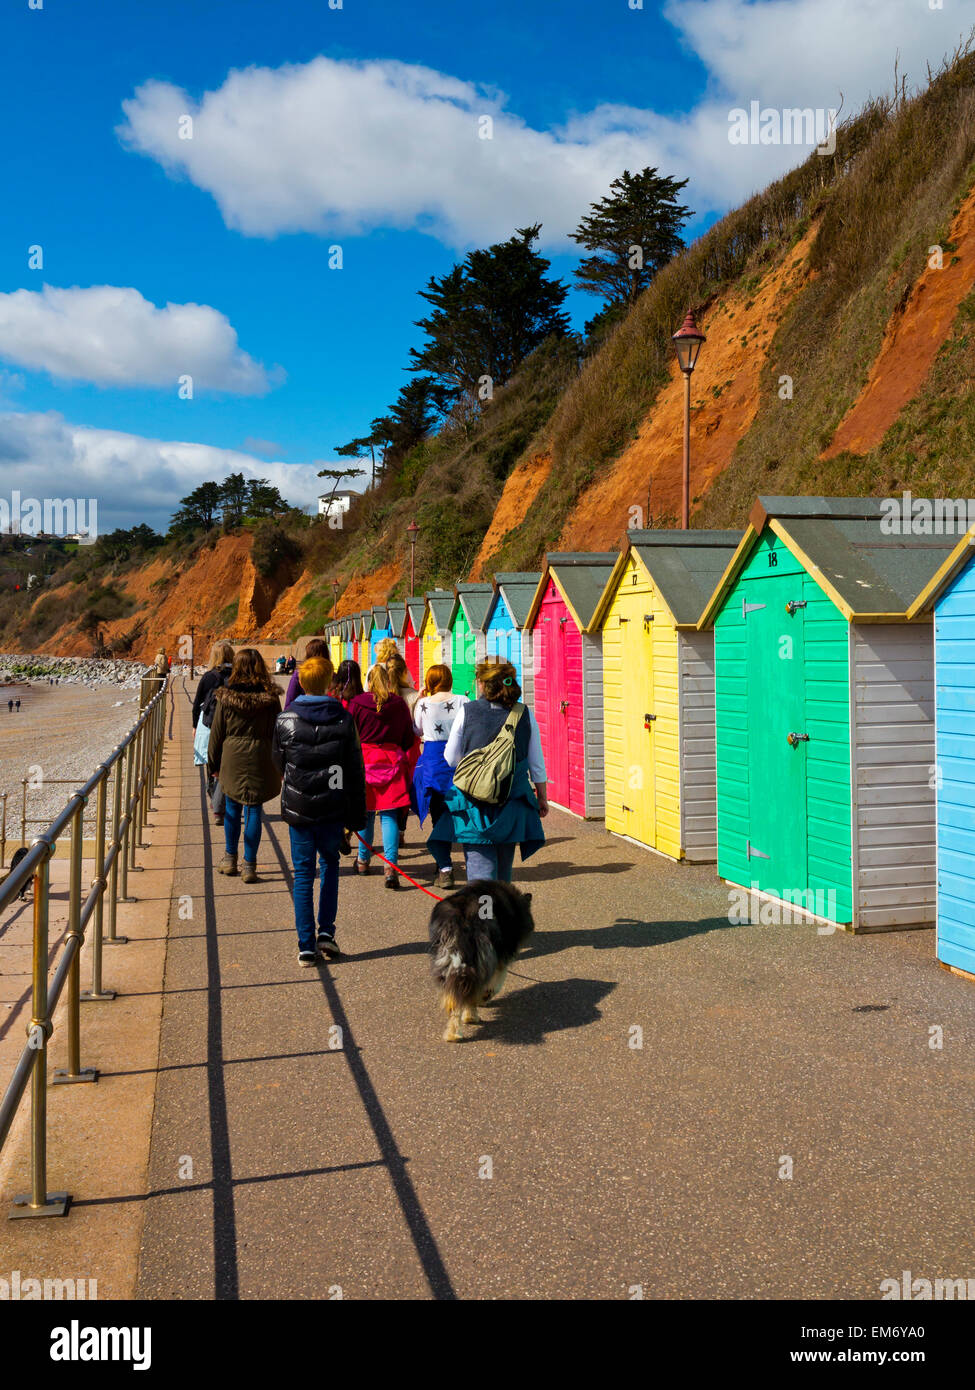 Holidaymakers walking along the Esplanade in Seaton Devon England UK with brightly coloured beach huts to one side - Stock Image